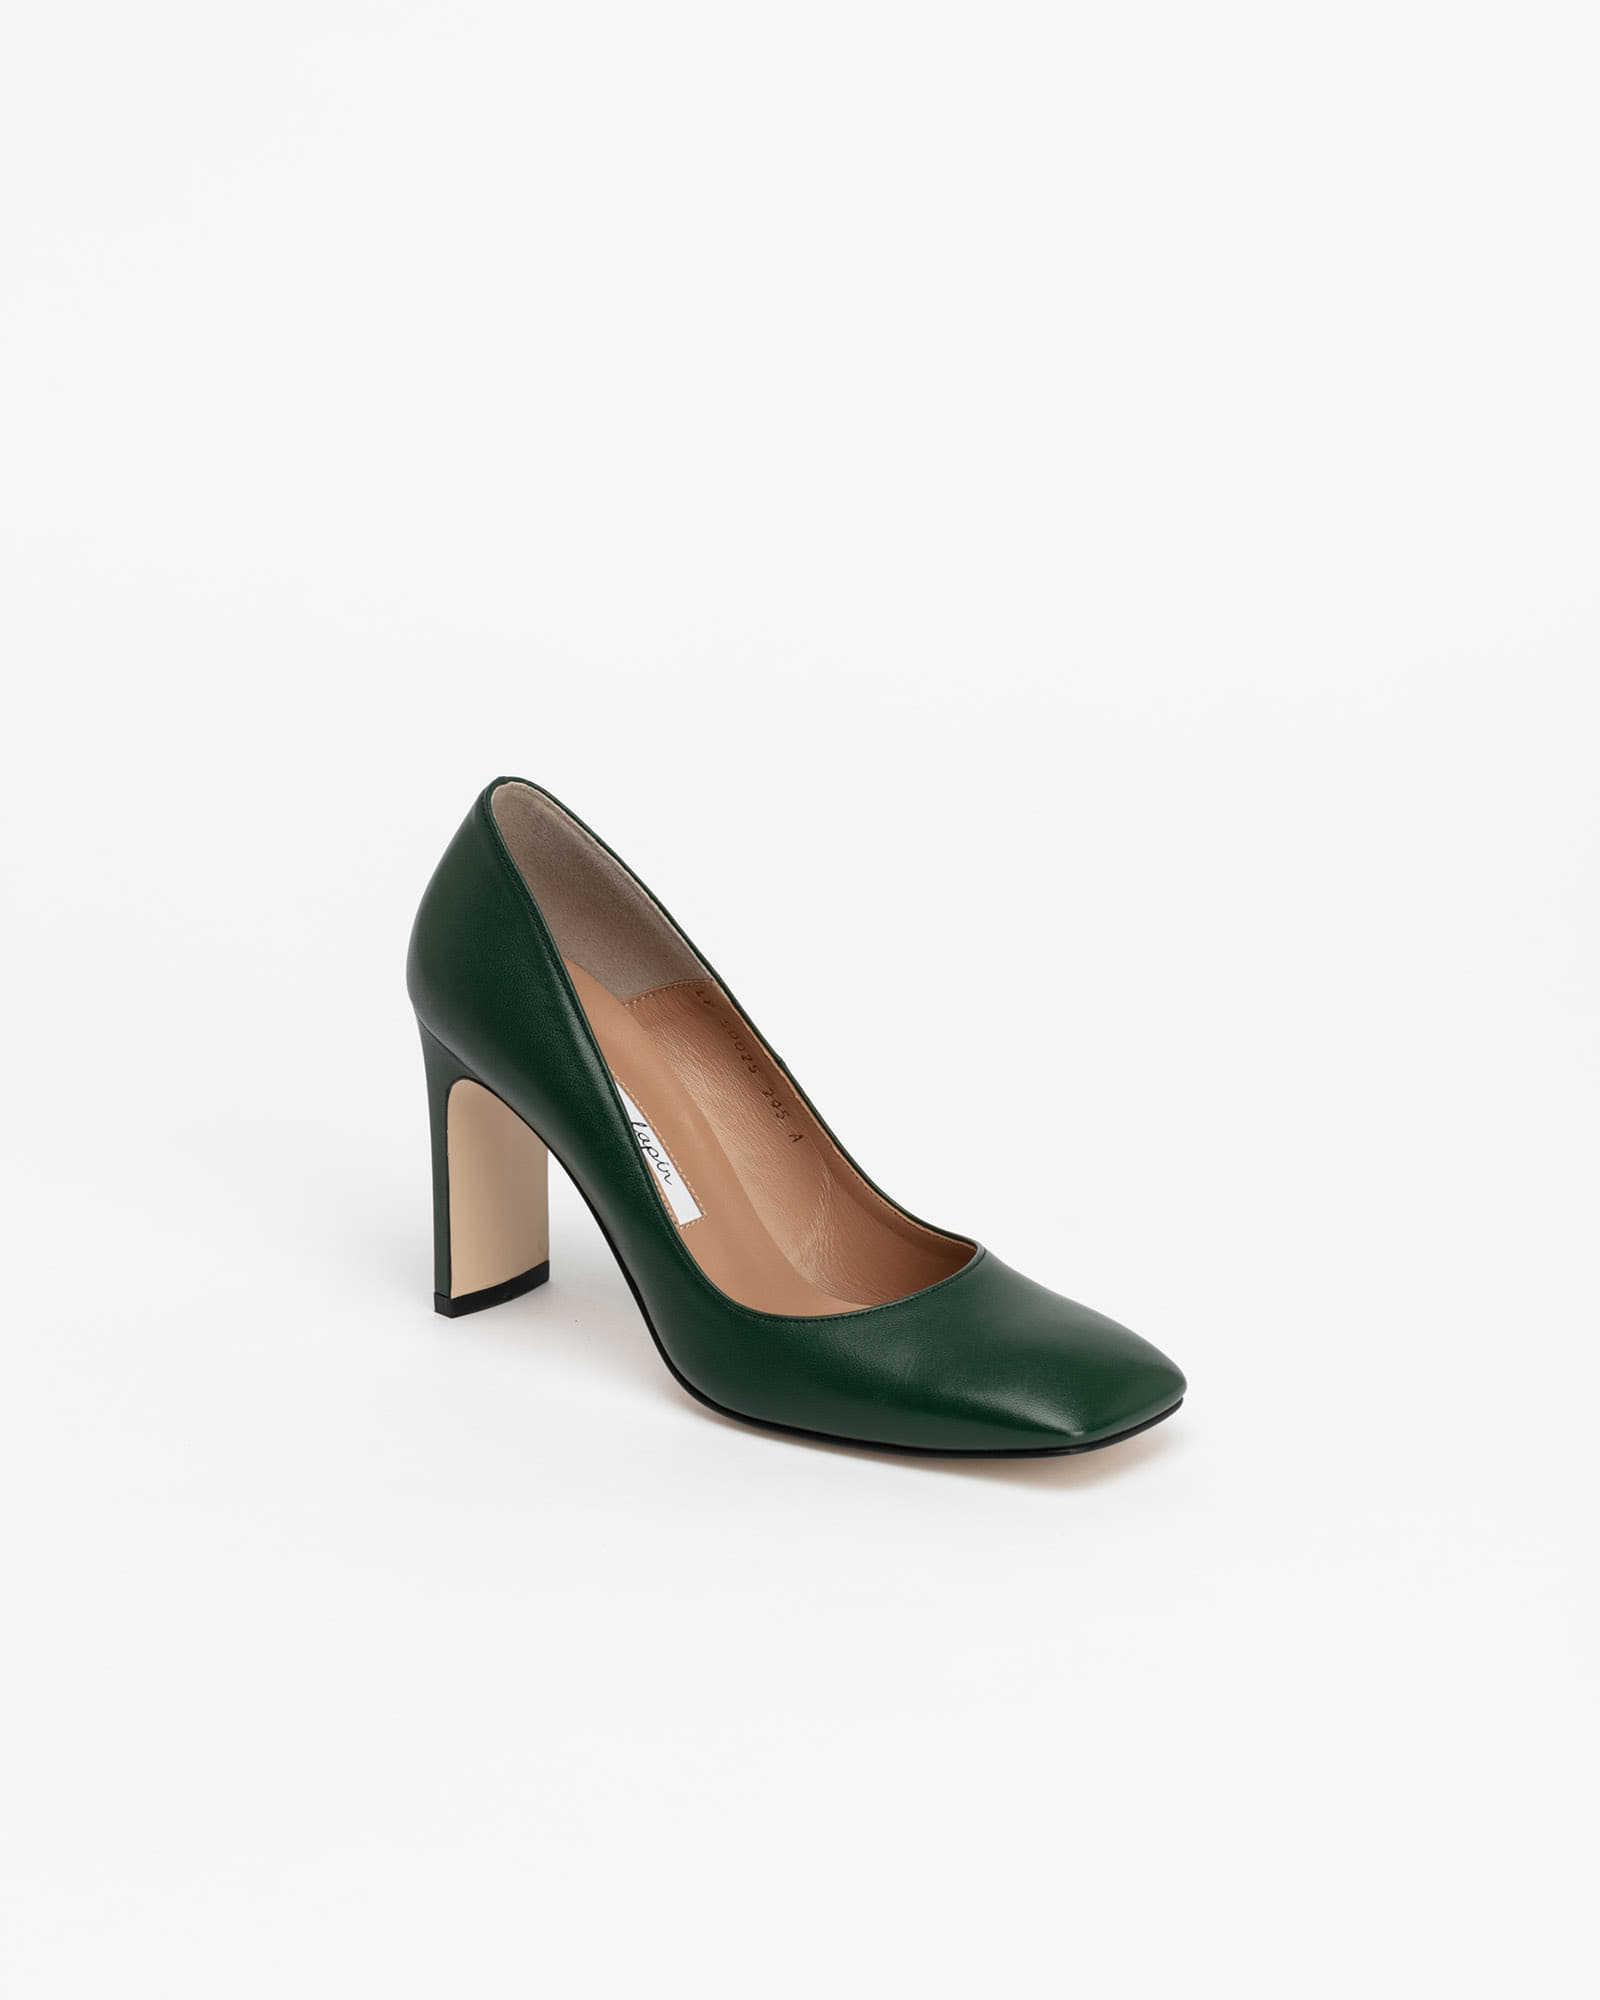 Carpa Pumps in Forest Green